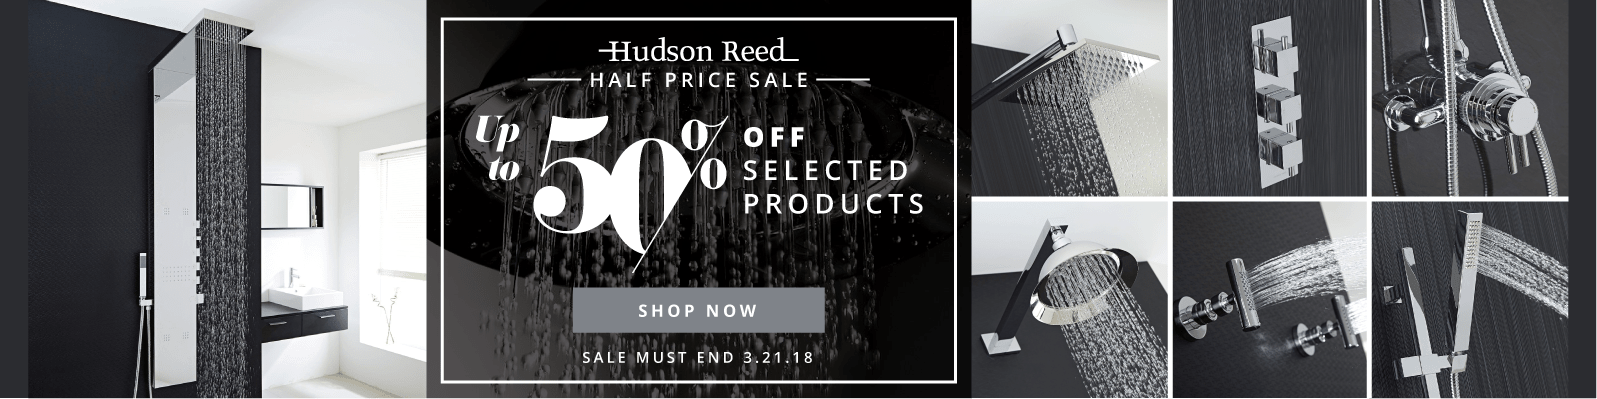 Hudson Reed Half Price Sale Up to 50% off selected products Sale Must End 3.21.18